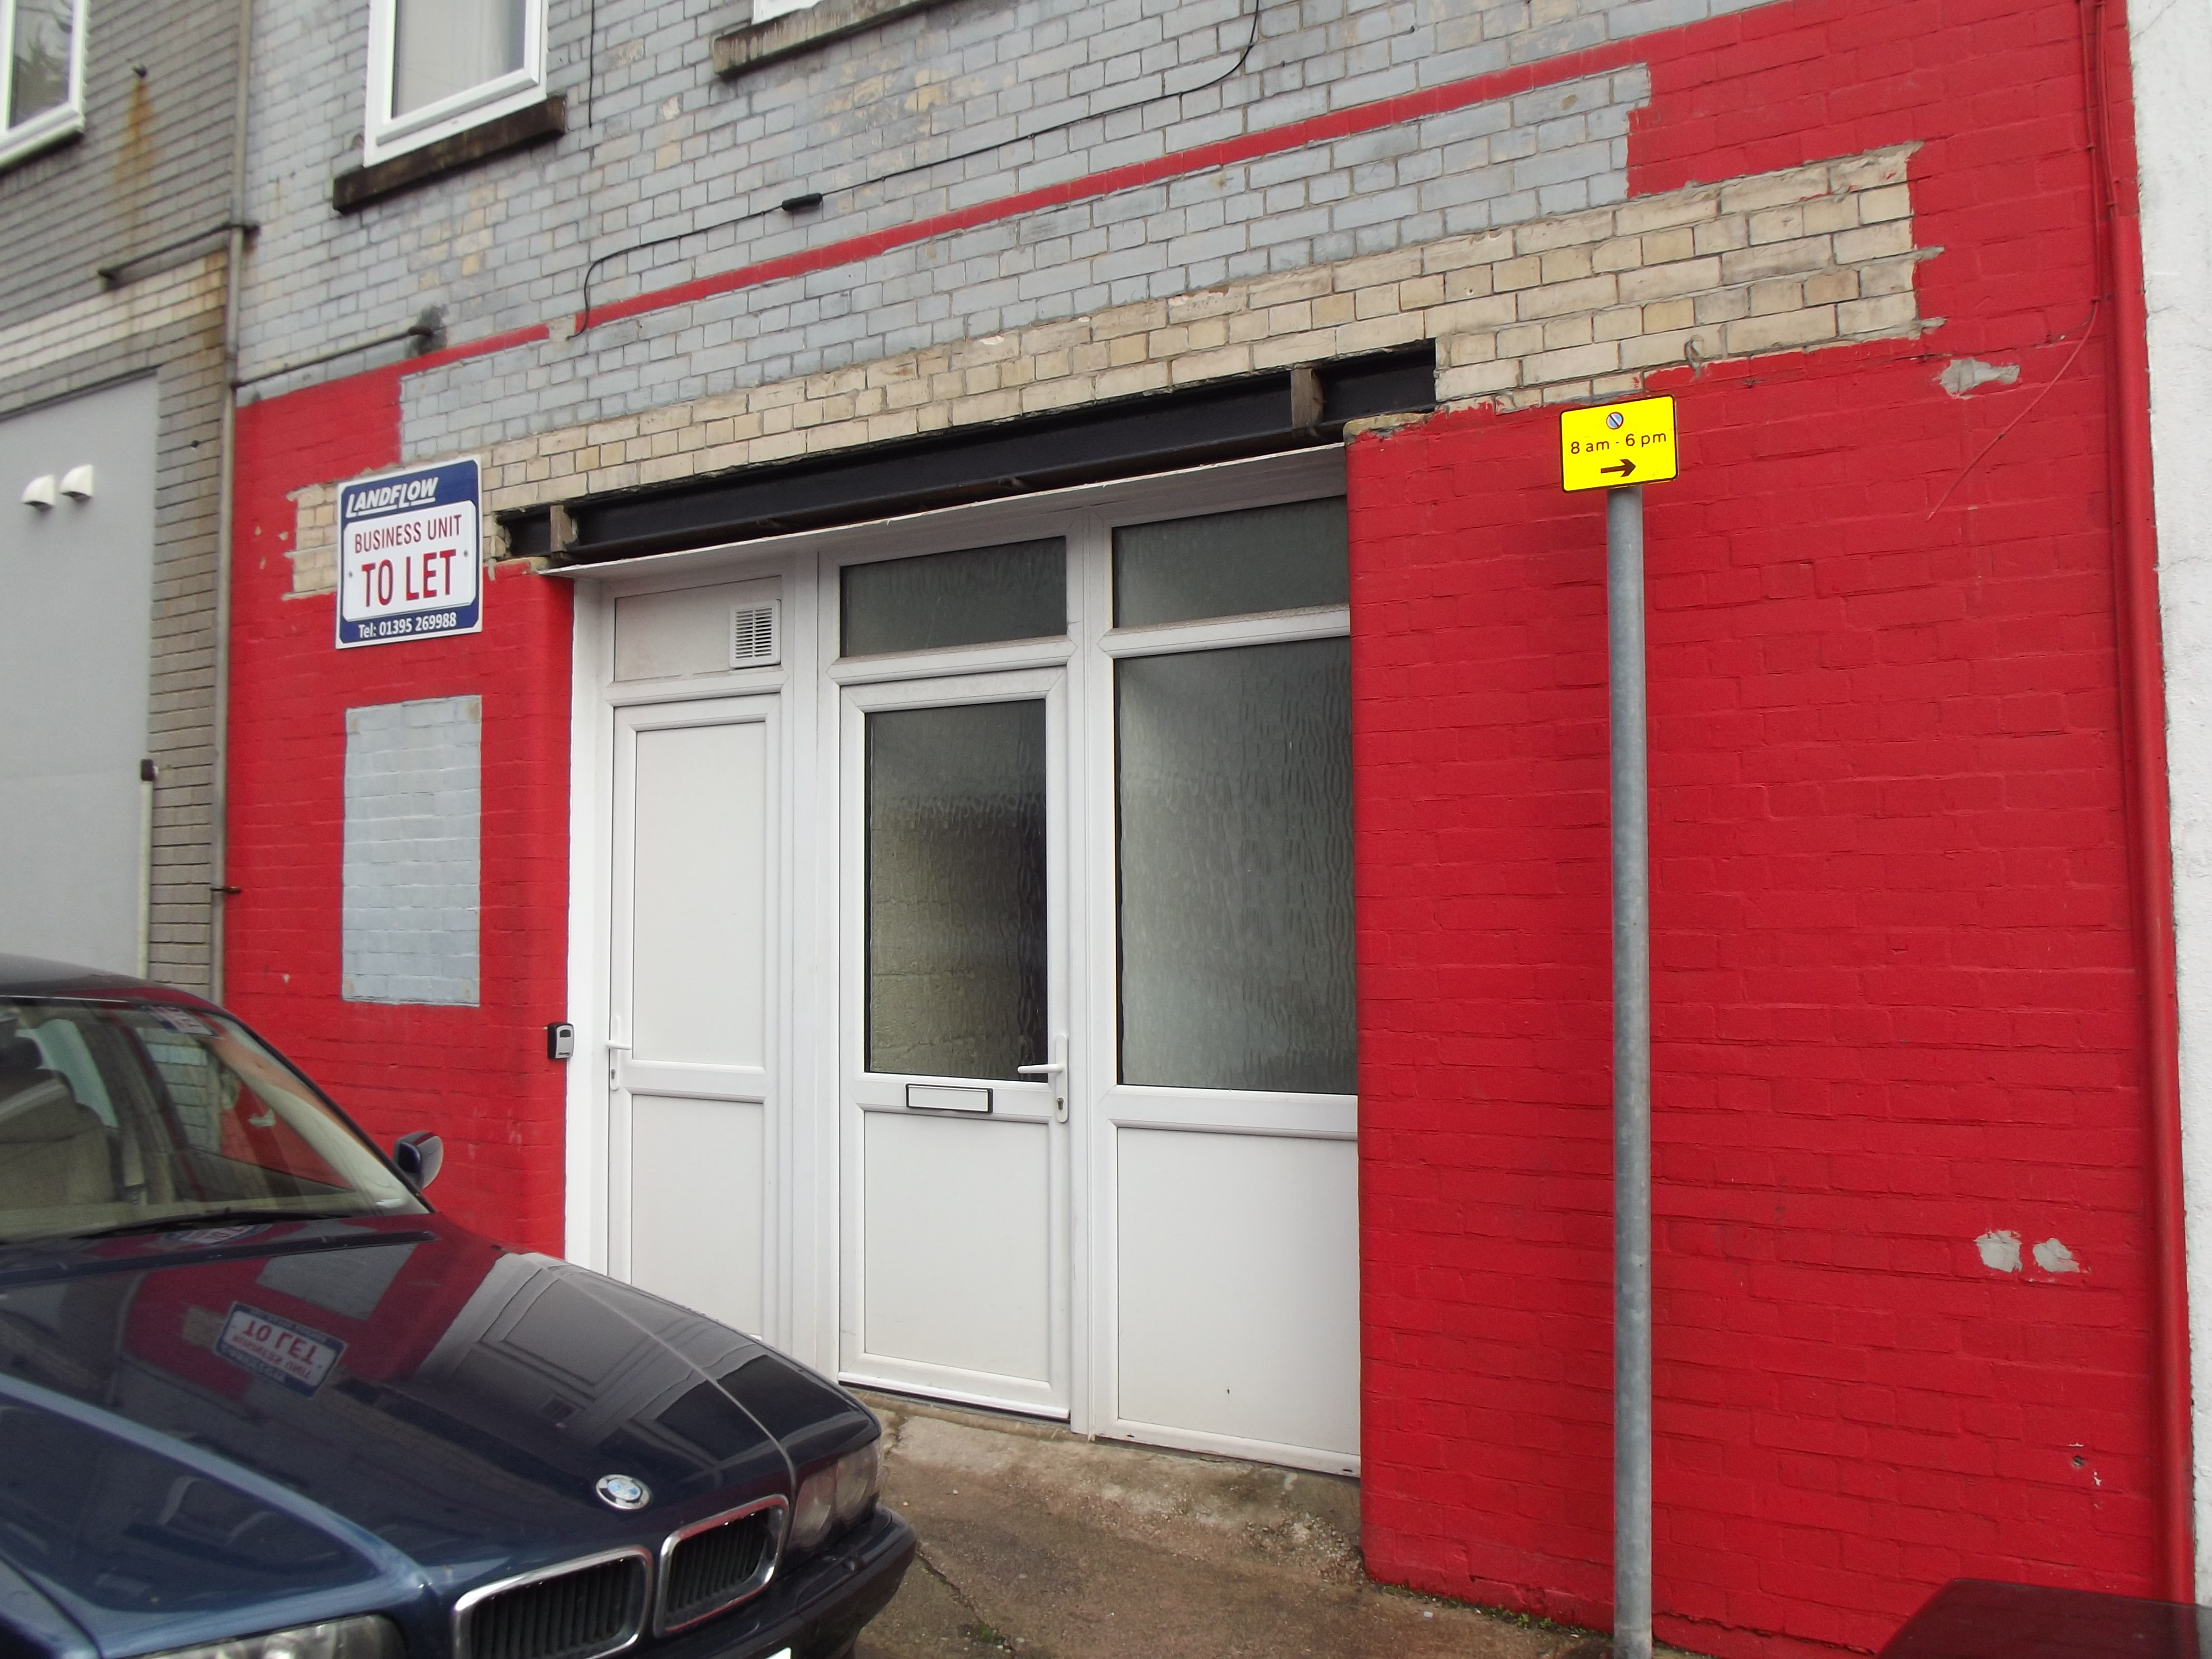 Commercial Property 16 Torquay Industrial Office Retail